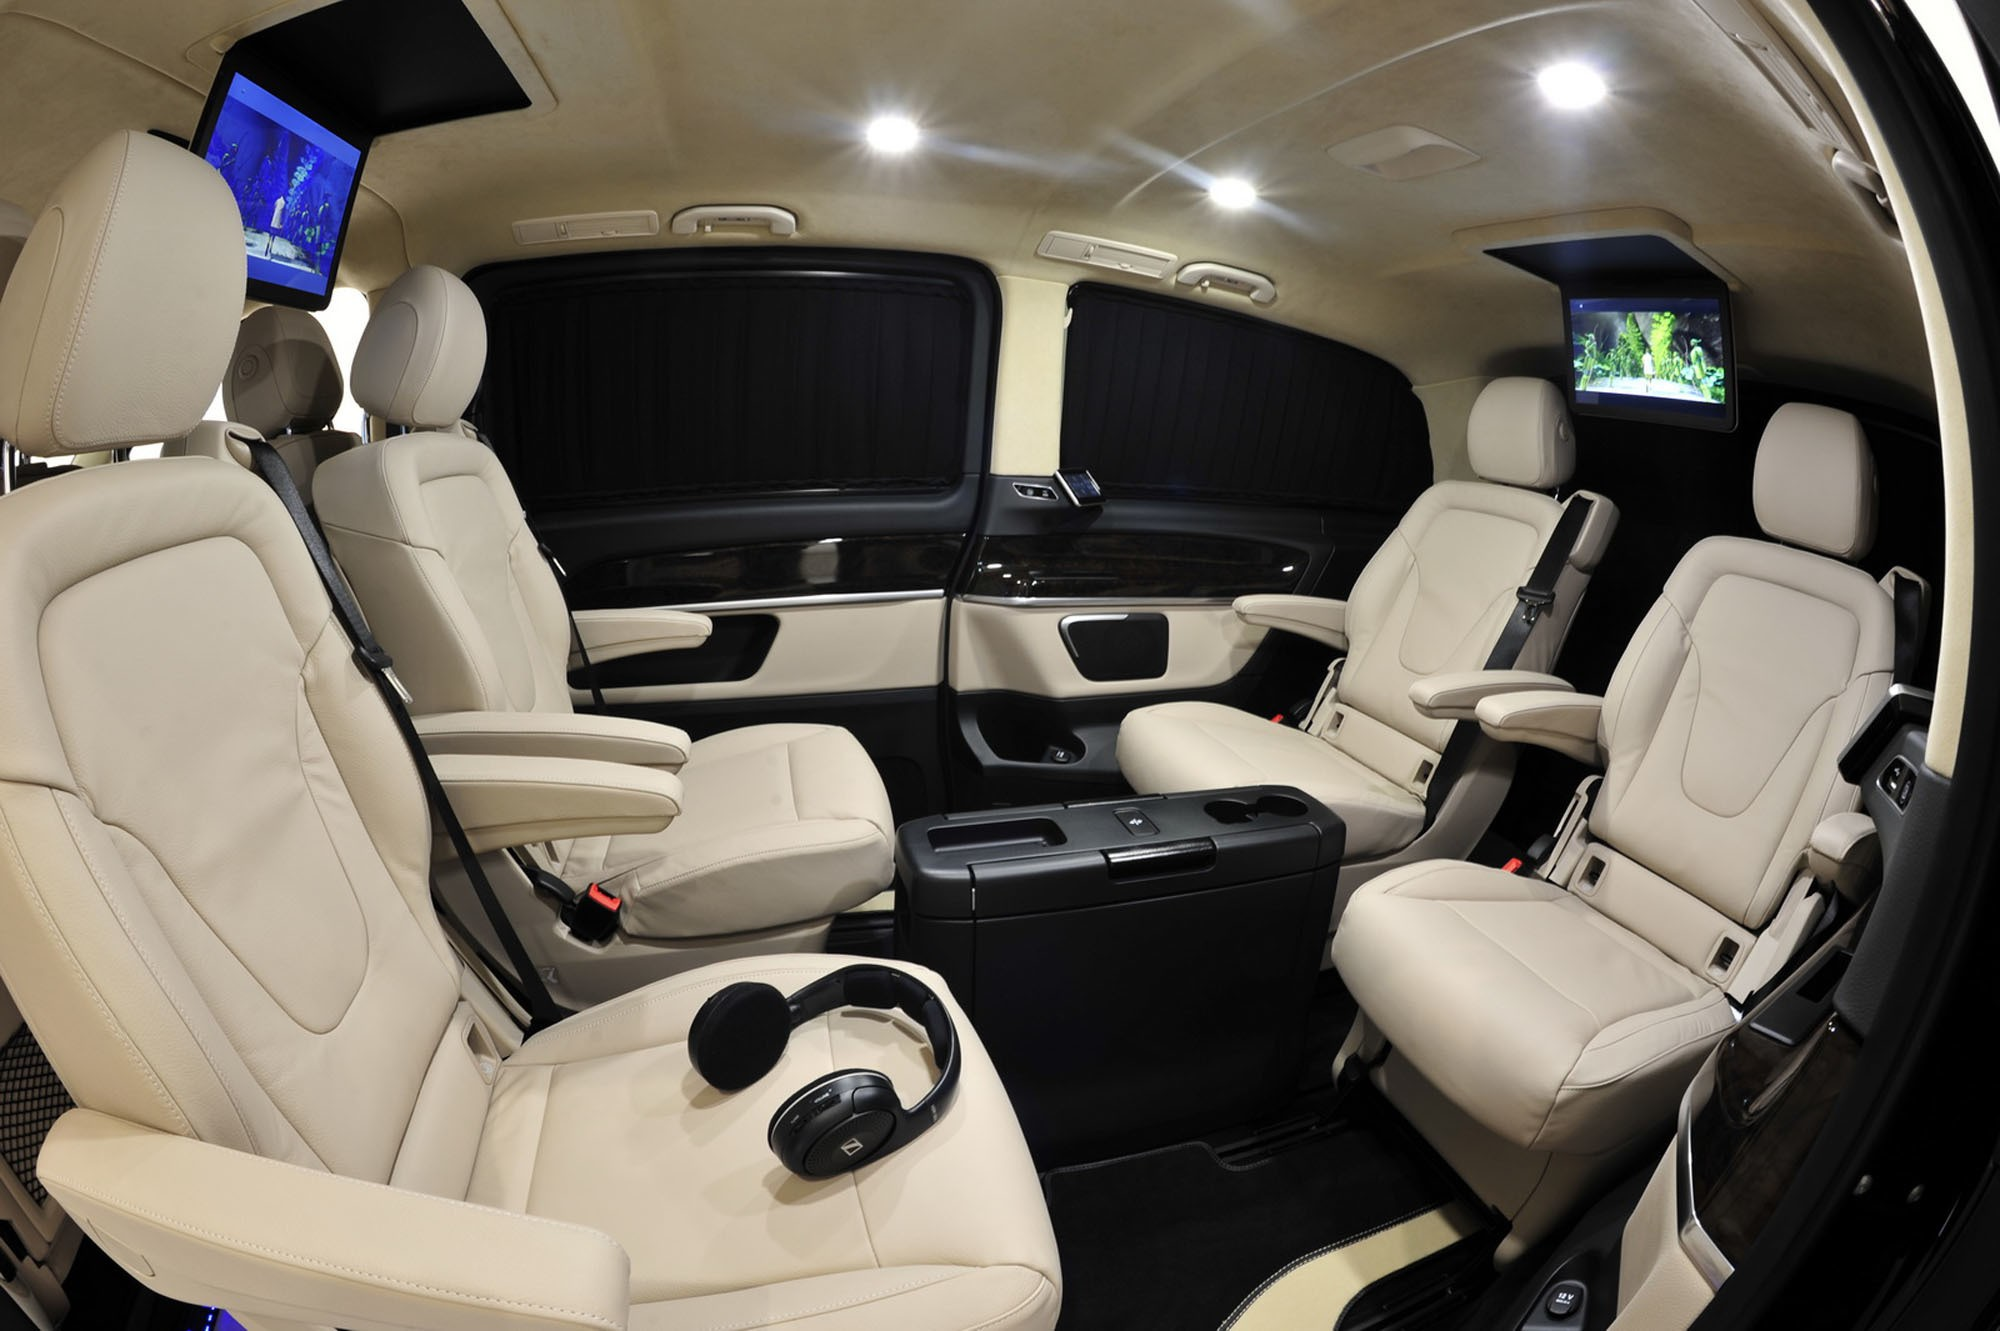 mercedes benz v class wins top shelf assets from brabus autoevolution. Black Bedroom Furniture Sets. Home Design Ideas